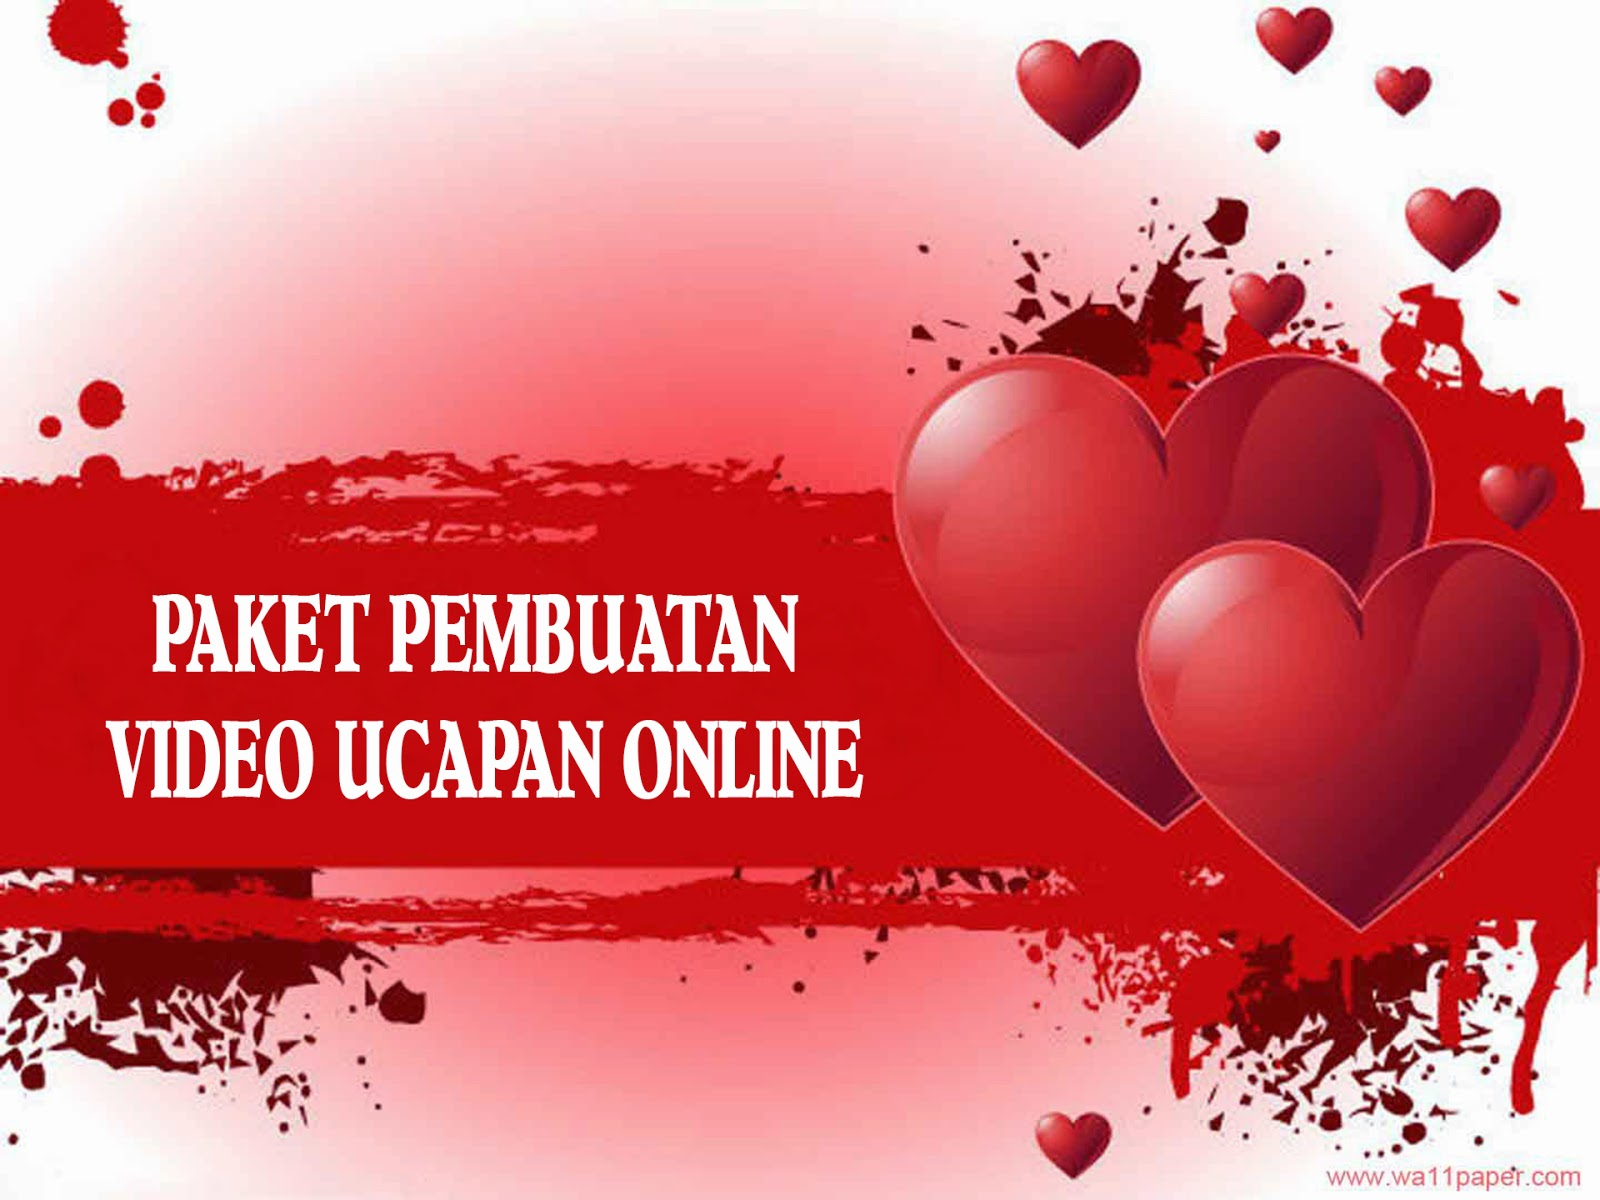 JASA VIDEO UCAPAN ONLINE